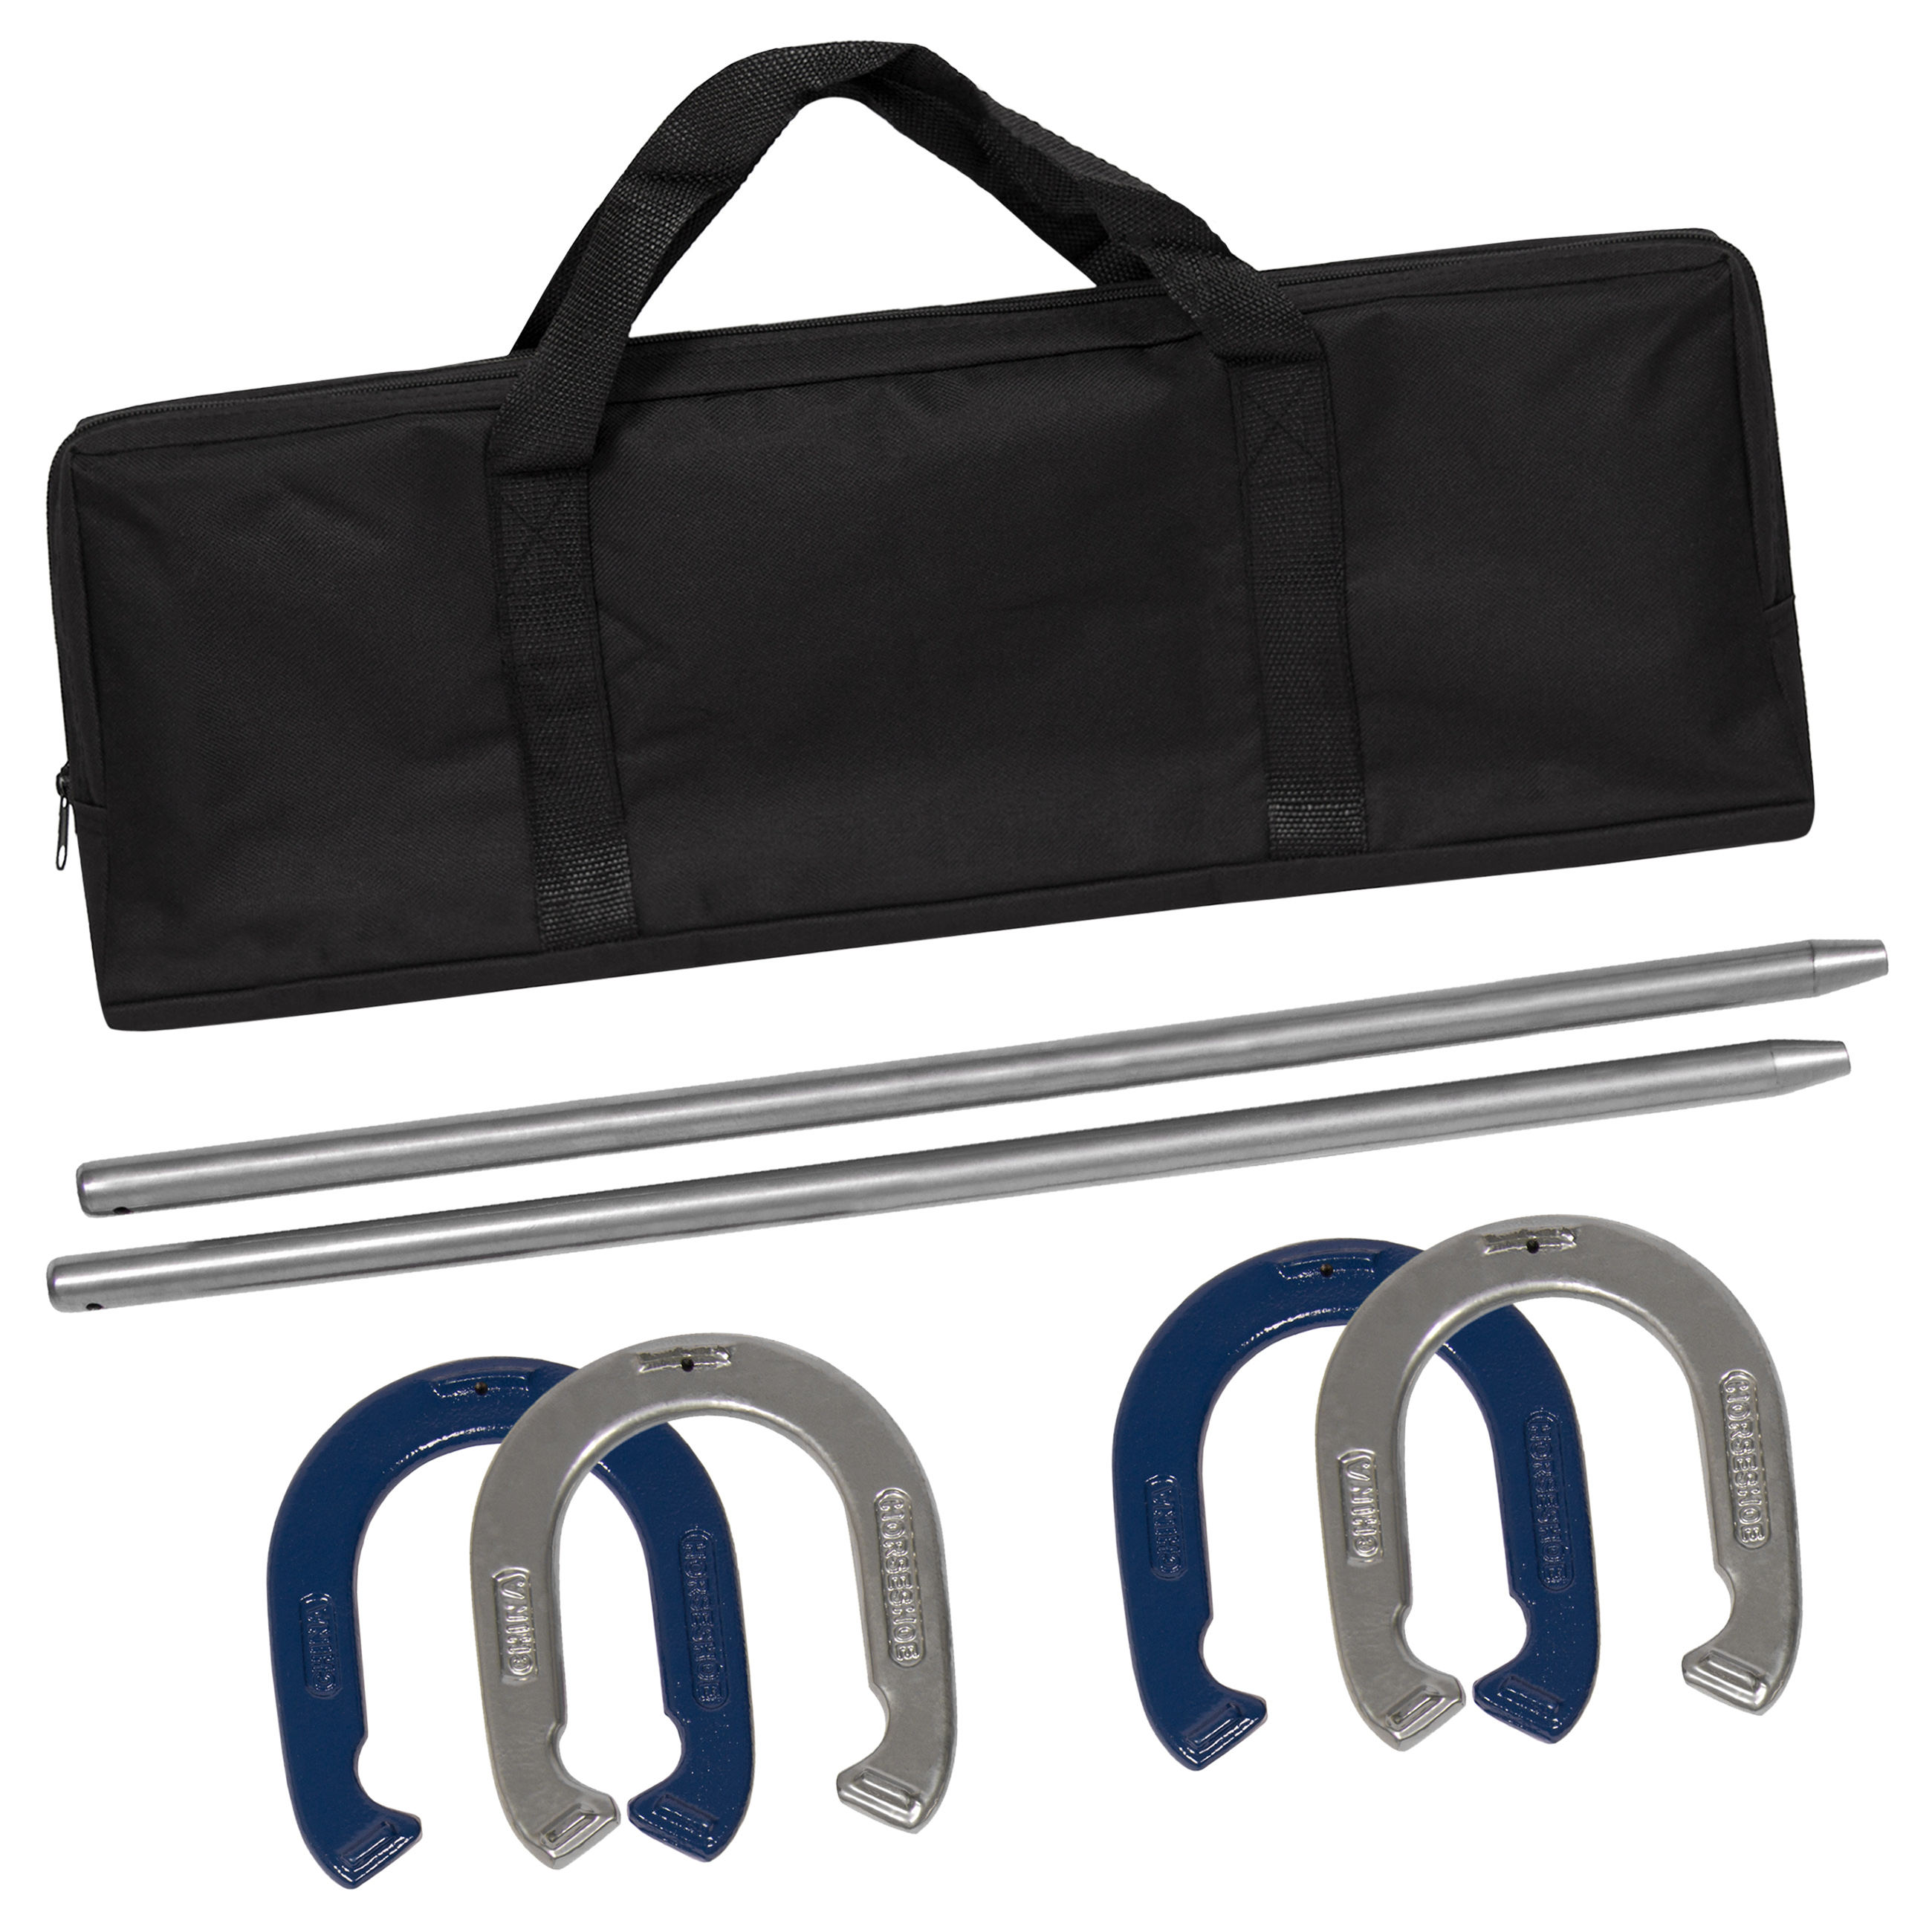 Best Choice Products Powder-Coated Steel Horseshoe Game Set w/ Carrying Case - Multicolor